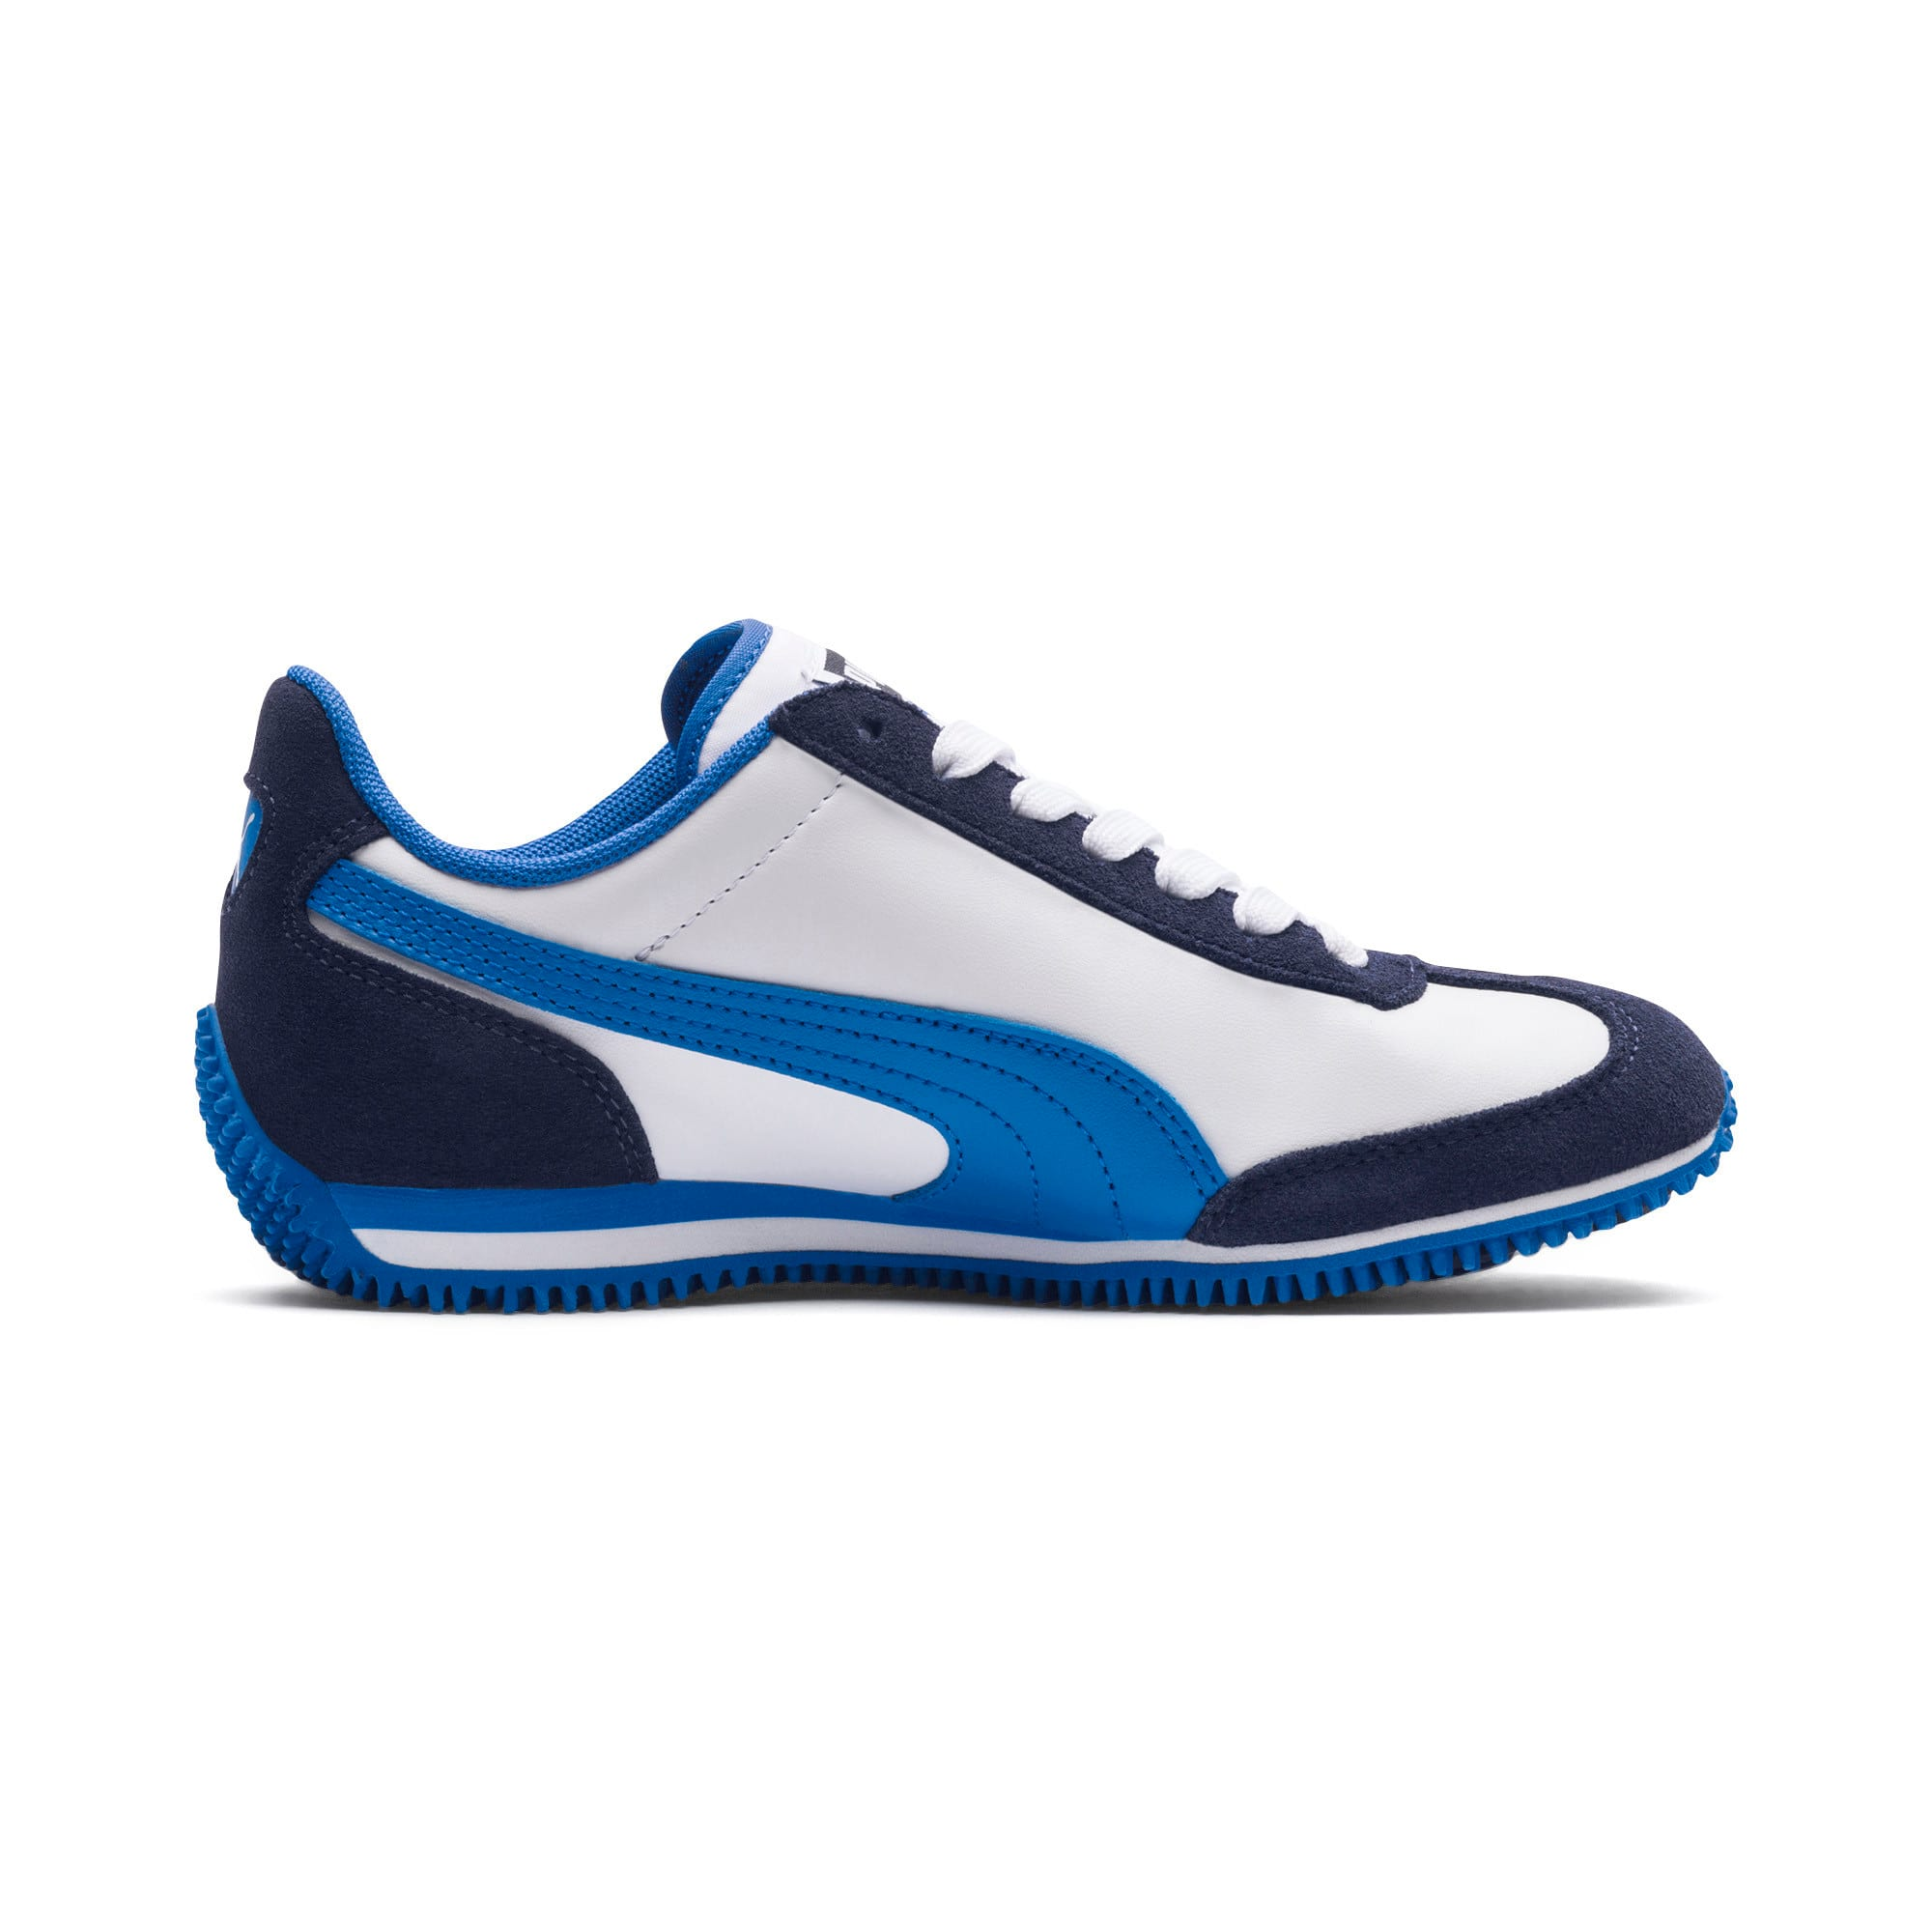 Thumbnail 5 of Kid's Whirlwind Trainers, White-Peacoat-Strong Blue, medium-IND